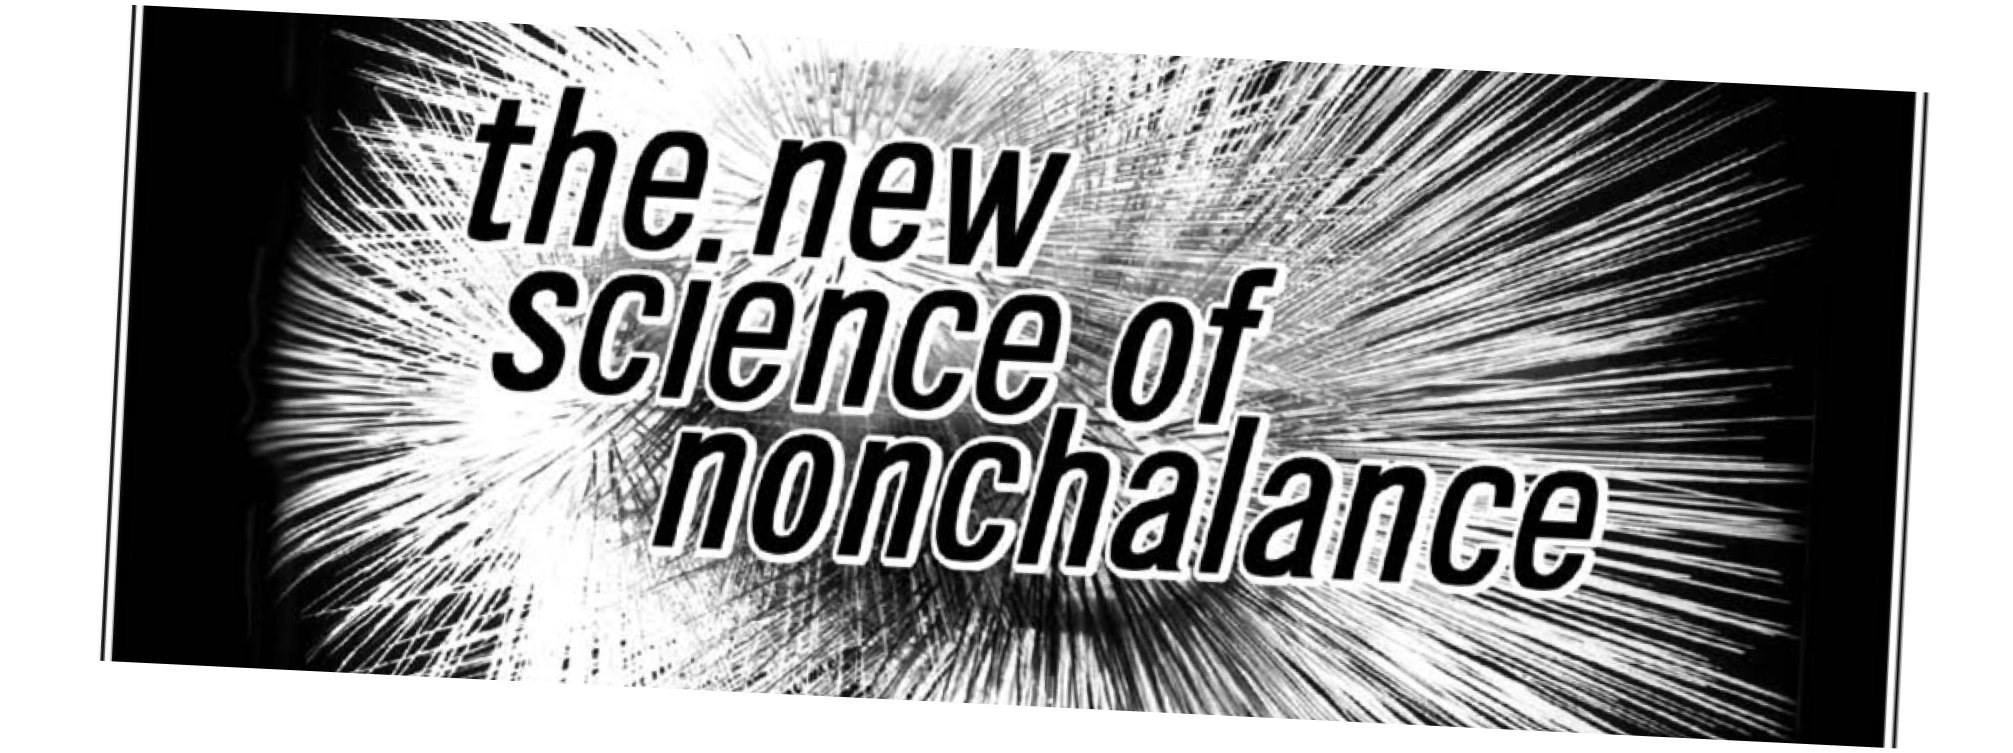 the new science of Nonchalance